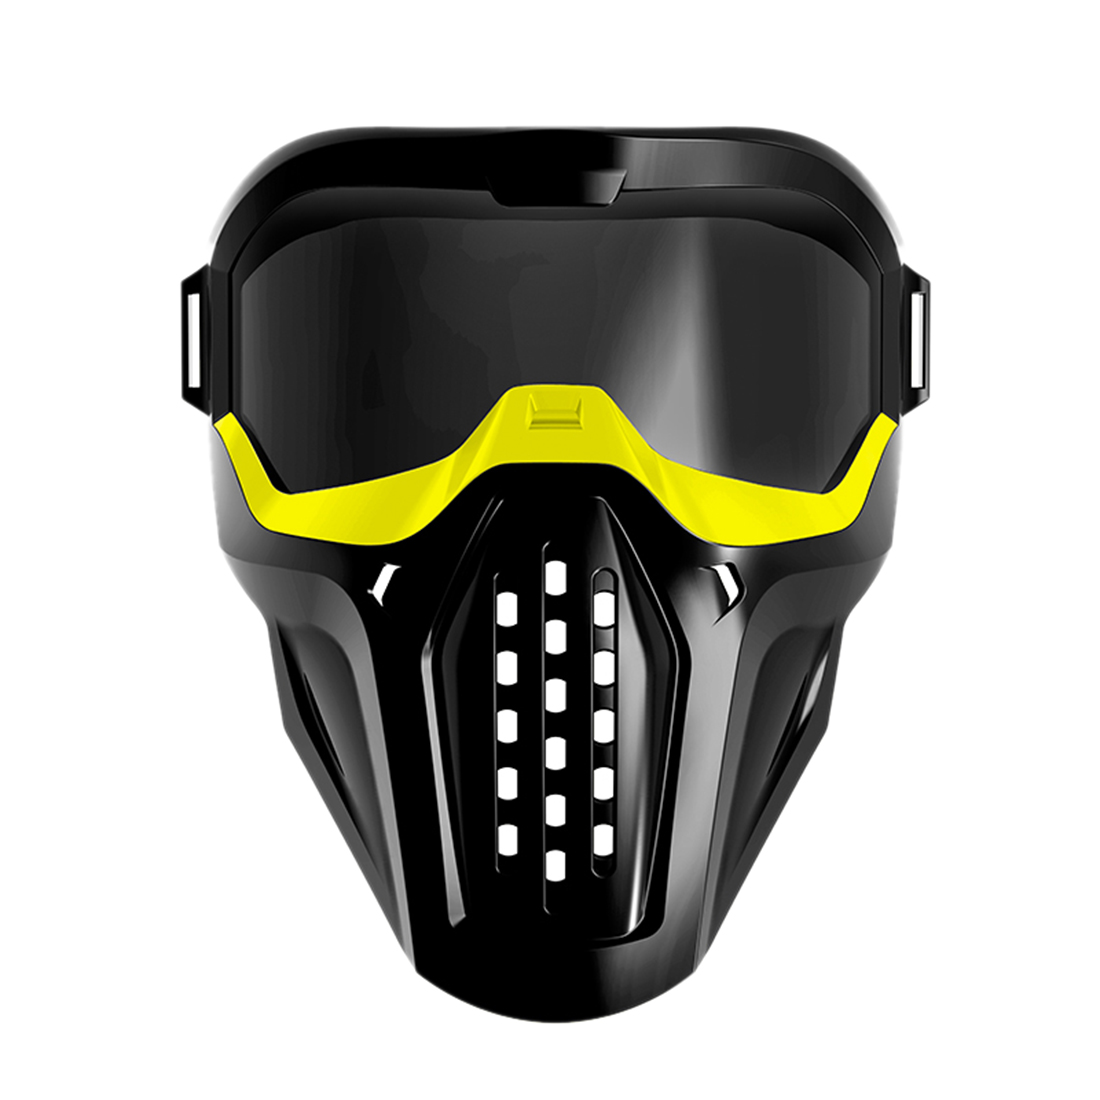 Soft Foam Darts PC Lens Face Mask Water Gel Beads Protective Mask For Outdoor Hunting Paintball Equipment High Quality 2019